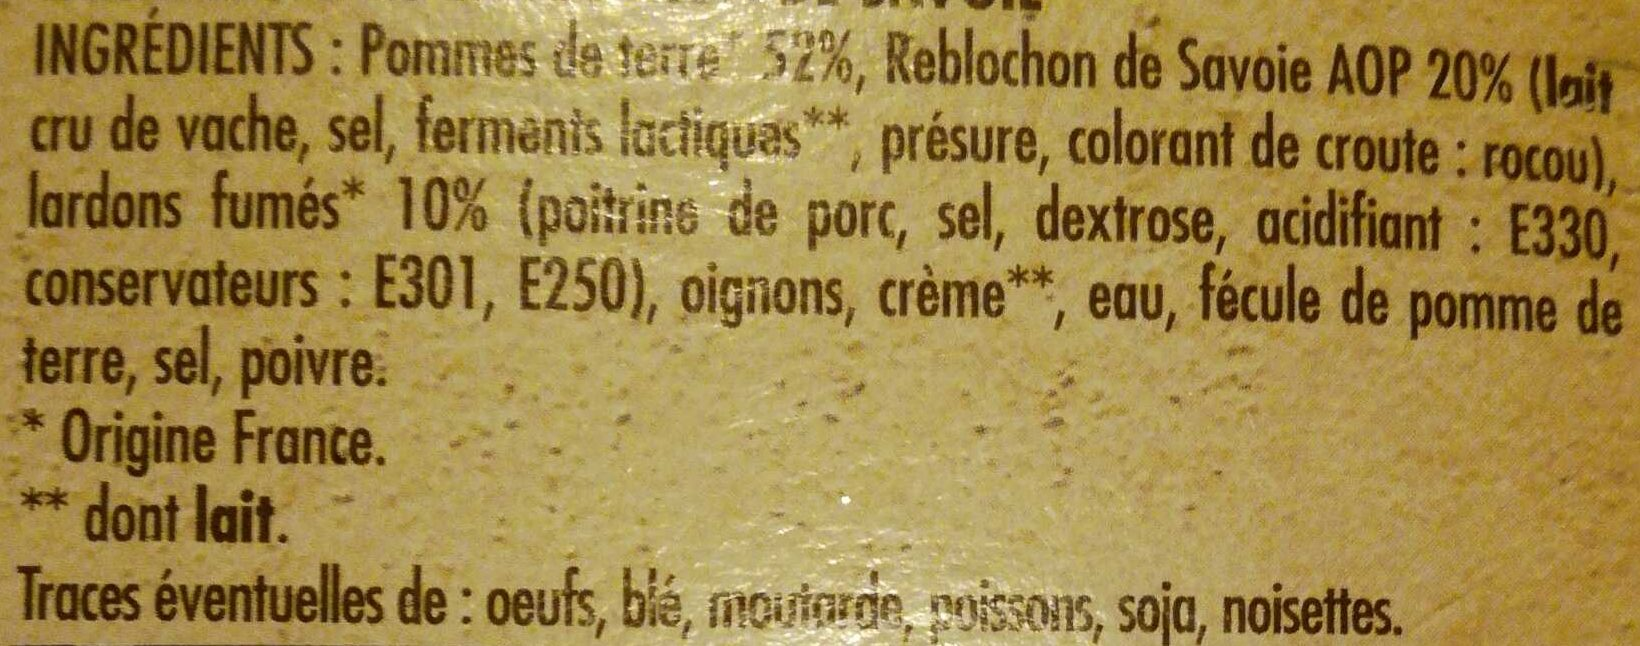 Tartiflette au reblochon de savoie label rouge - Ingredients - fr